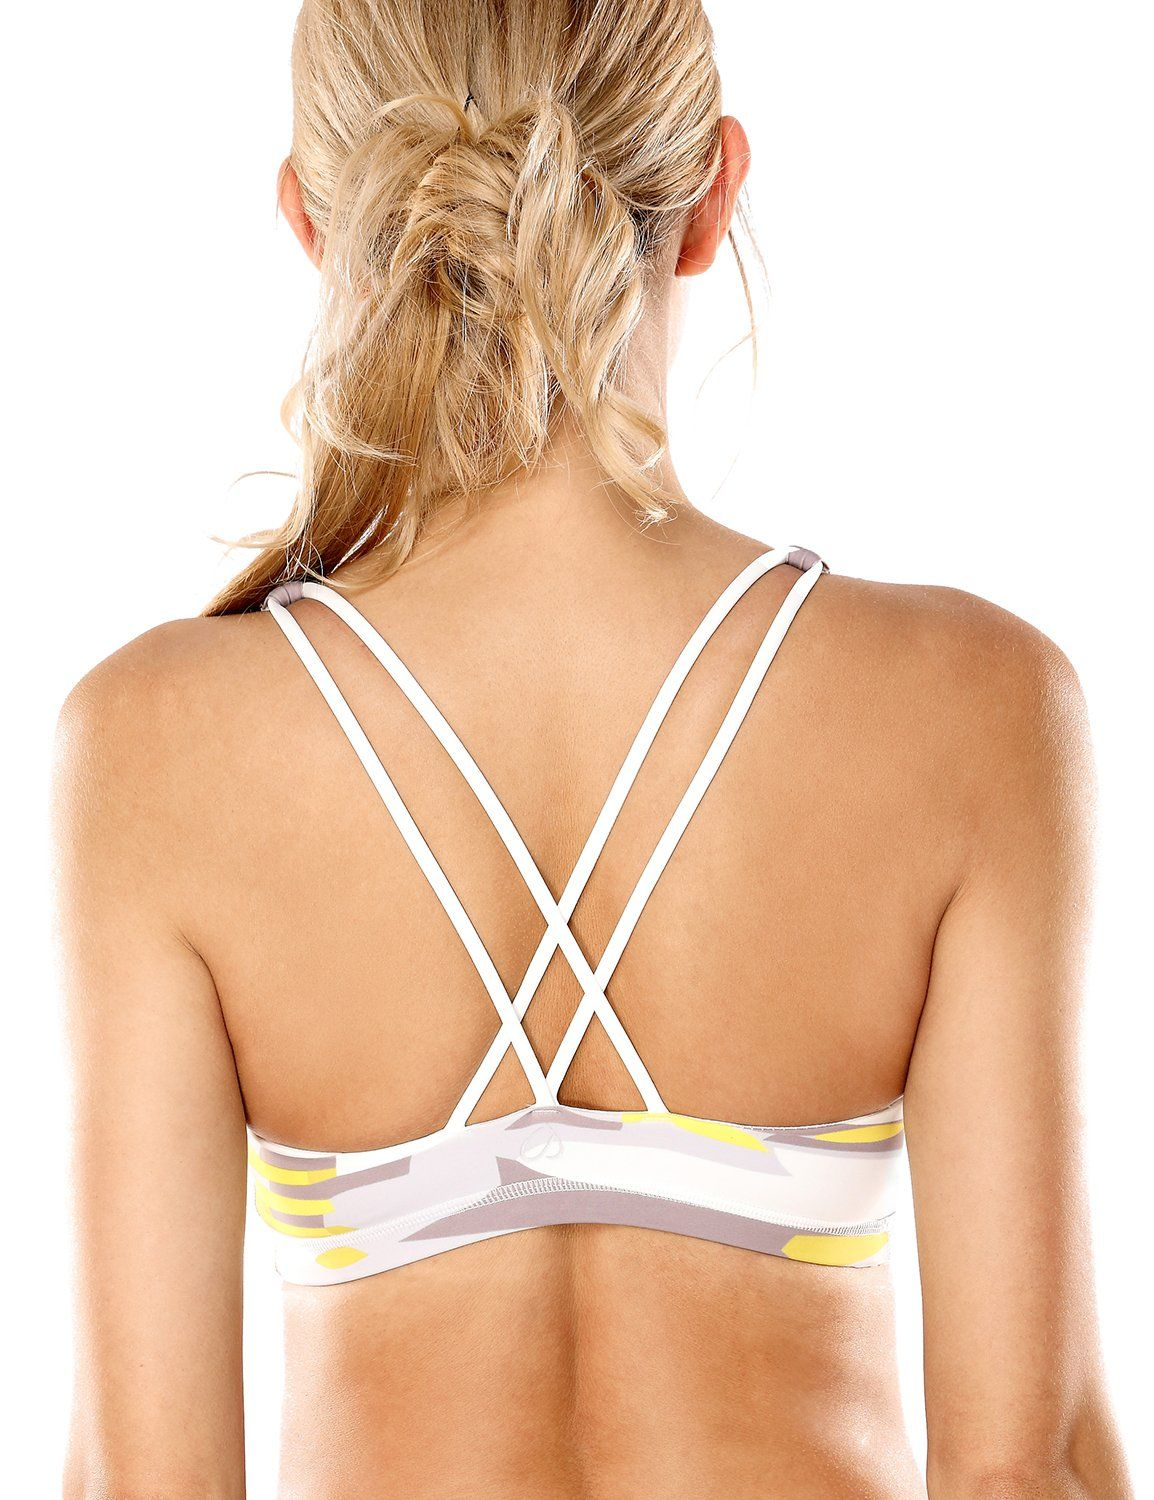 670d43c3a50 CRZ YOGA Womens Light Support Cross Back Wirefree Removable Cups Yoga Sport  Bra Multicoloured